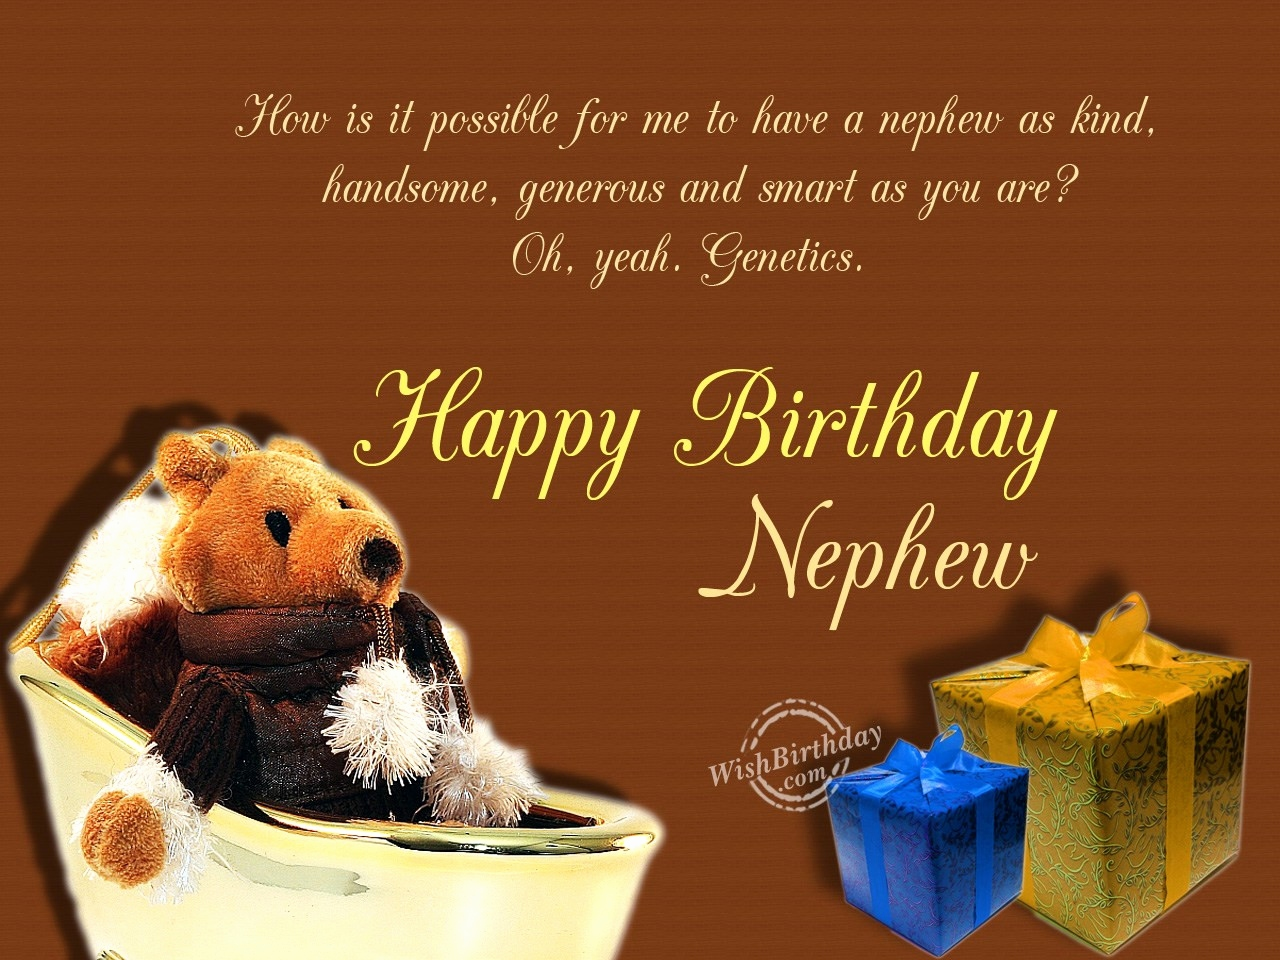 happy birthday wishes download images ; happy-birthday-wishes-for-nephew-elegant-download-happy-birthday-nephew-of-happy-birthday-wishes-for-nephew